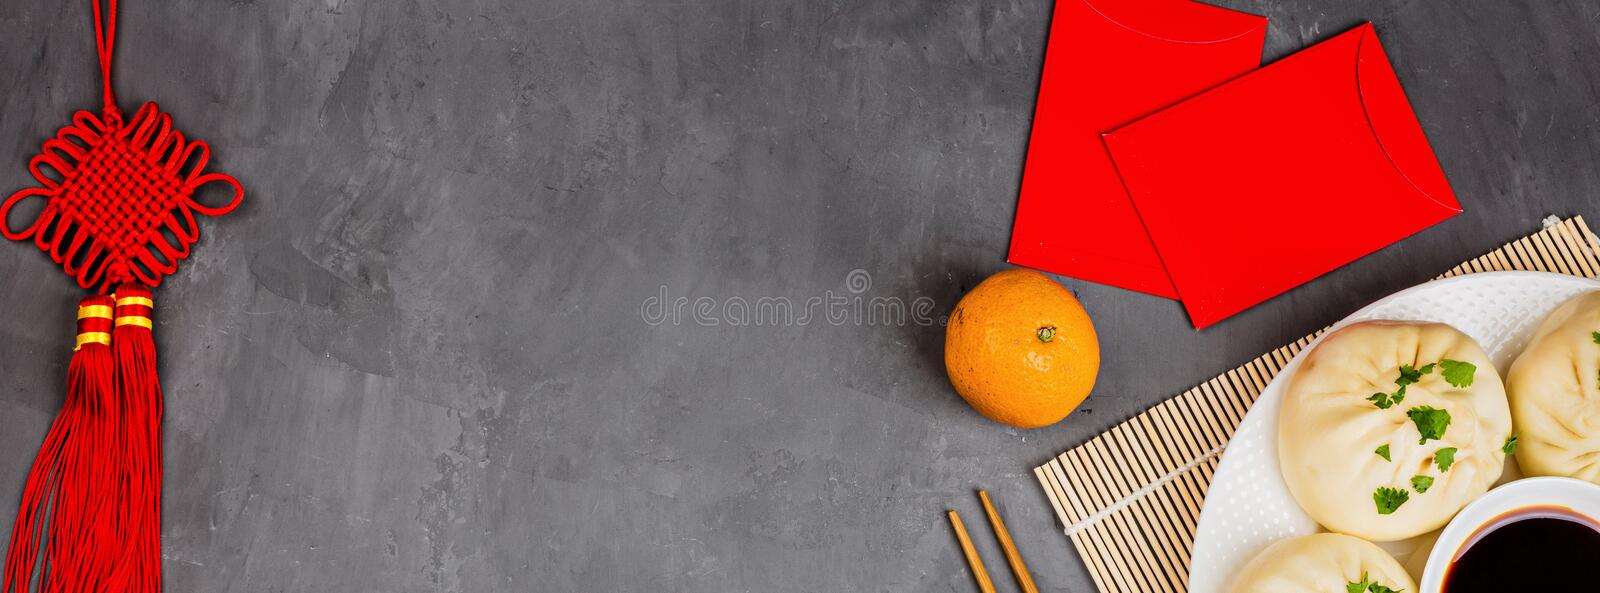 Chinese New Year decoration with dumplings, tangerines, soy sauce, chopsticks, red envelopes on gray concrete background. Happy stock photography